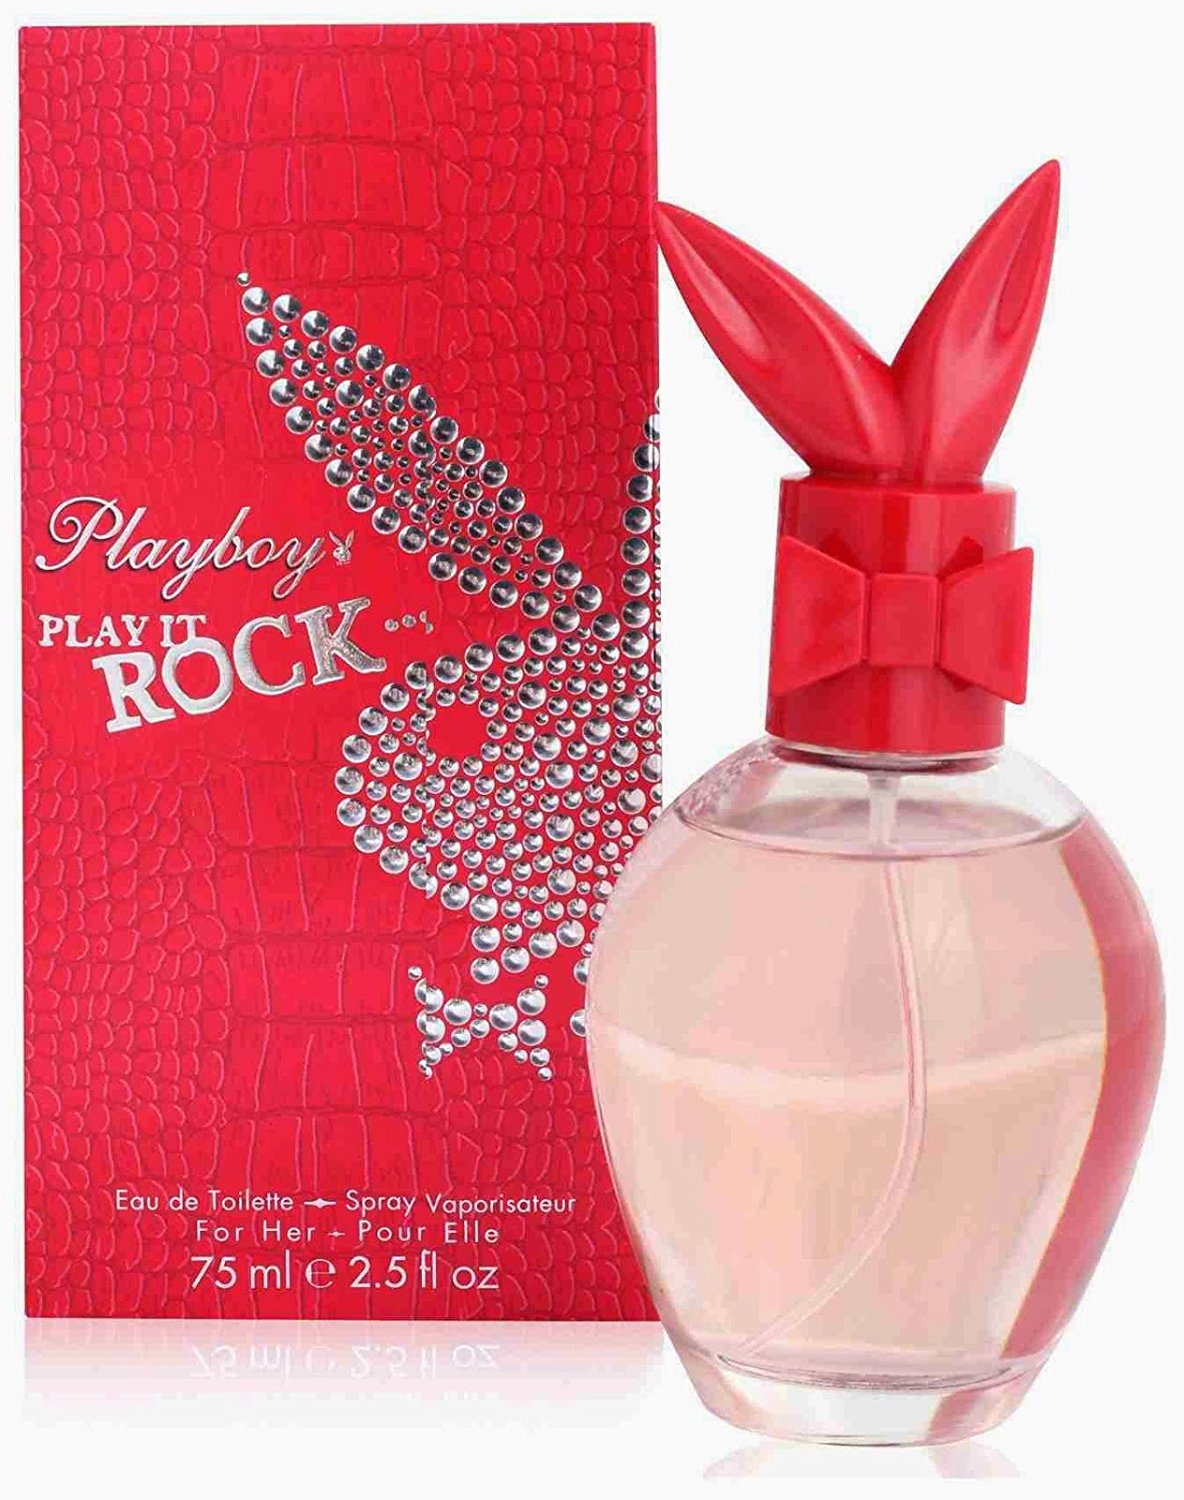 Play It Rock - PLayboy - Parfum à Rabais